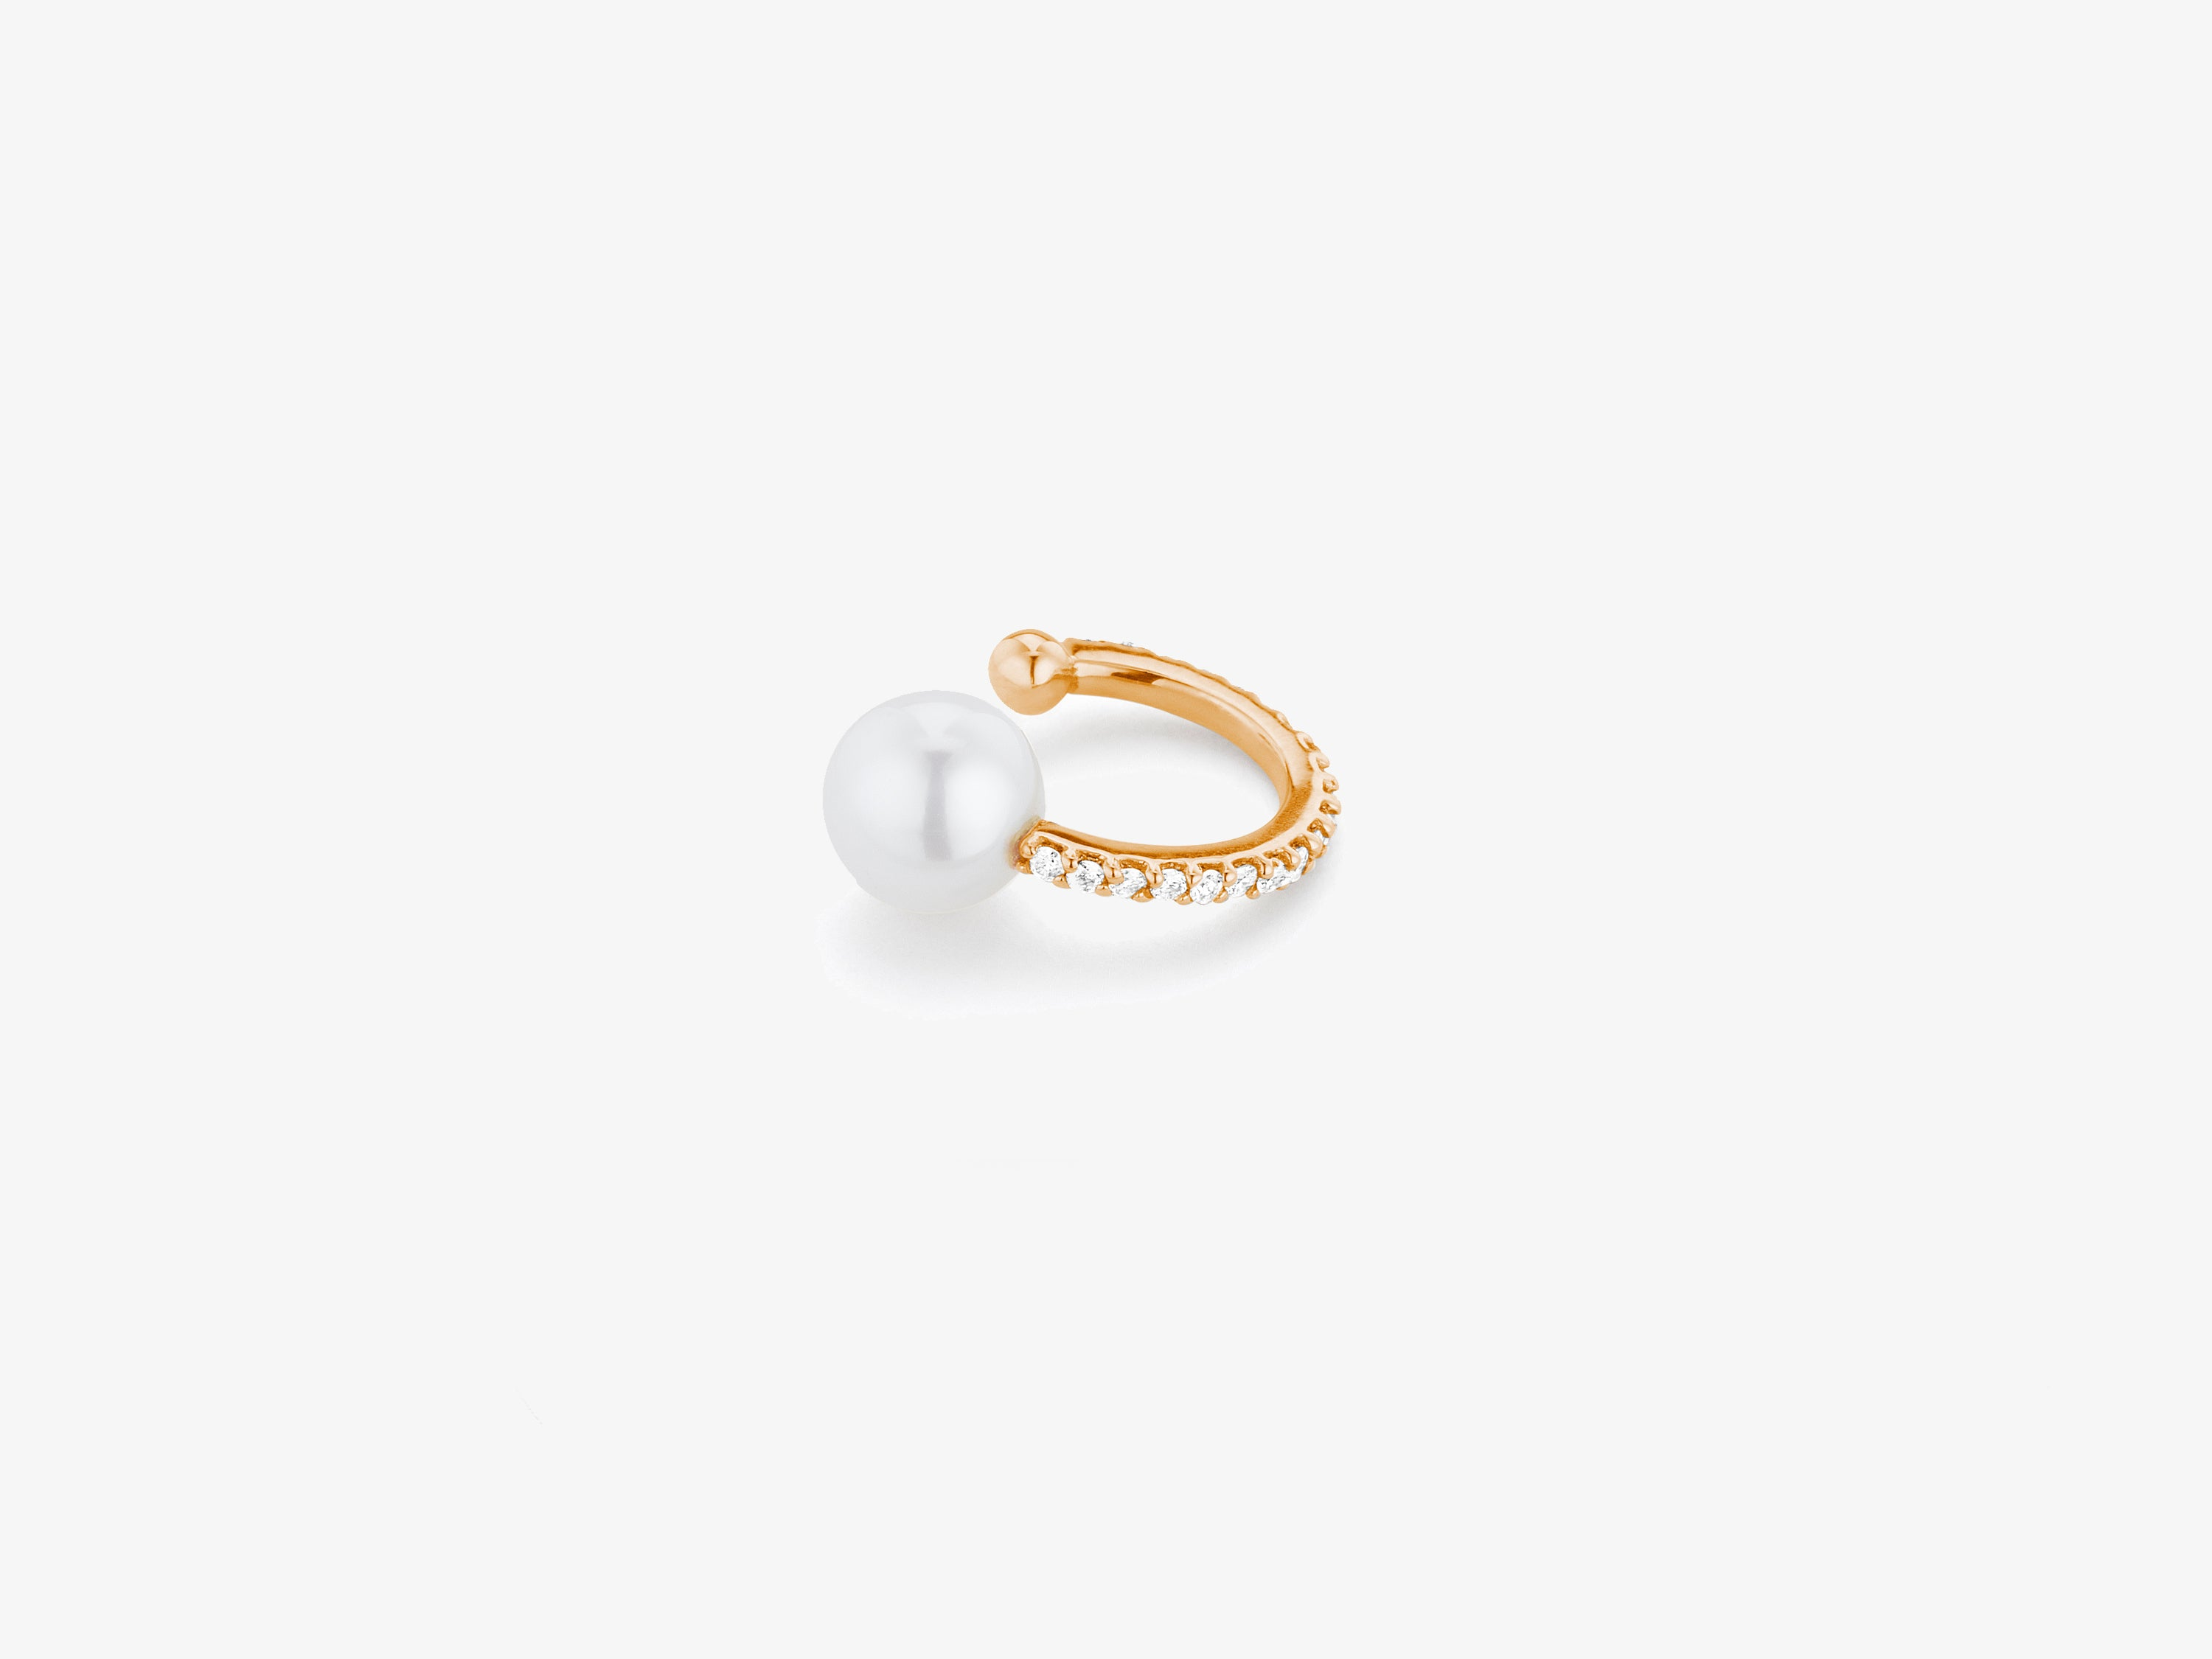 TPLT Pearl and Ball Ear Cuff with Diamond Pave